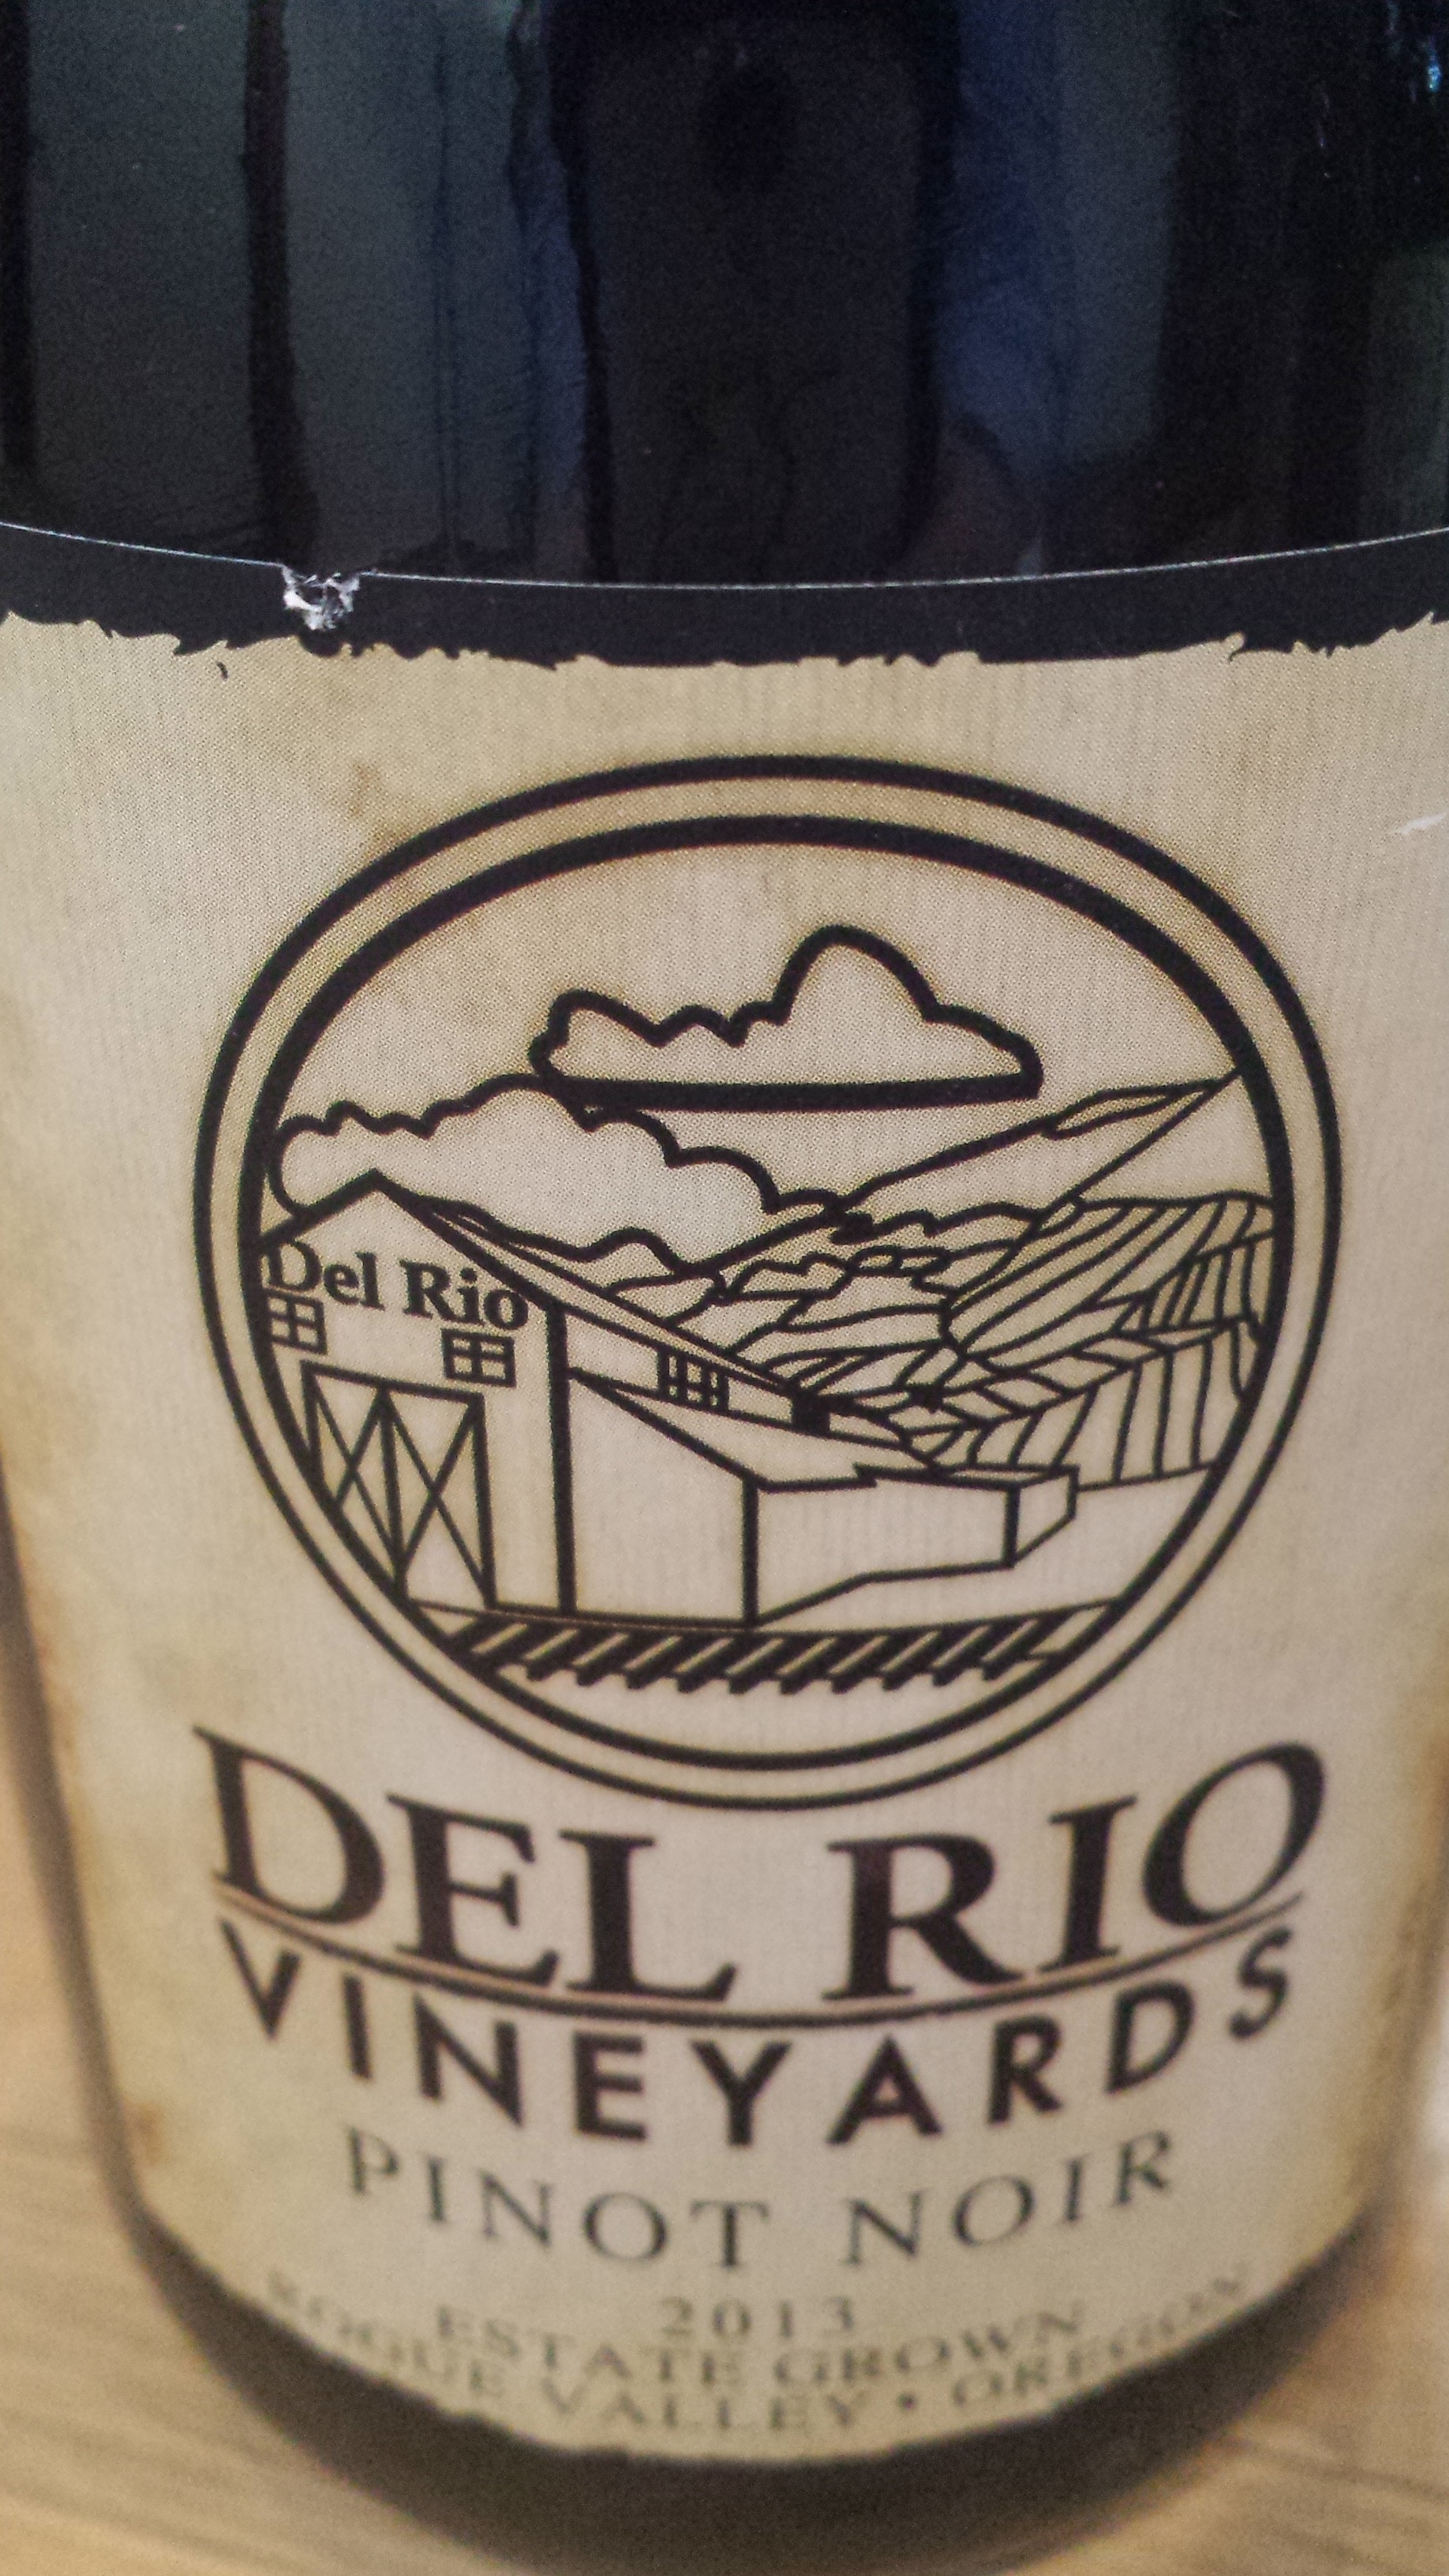 Del Rio Vineyards – Pinot Noir 2013 – Estate Grown – Rogue Valley